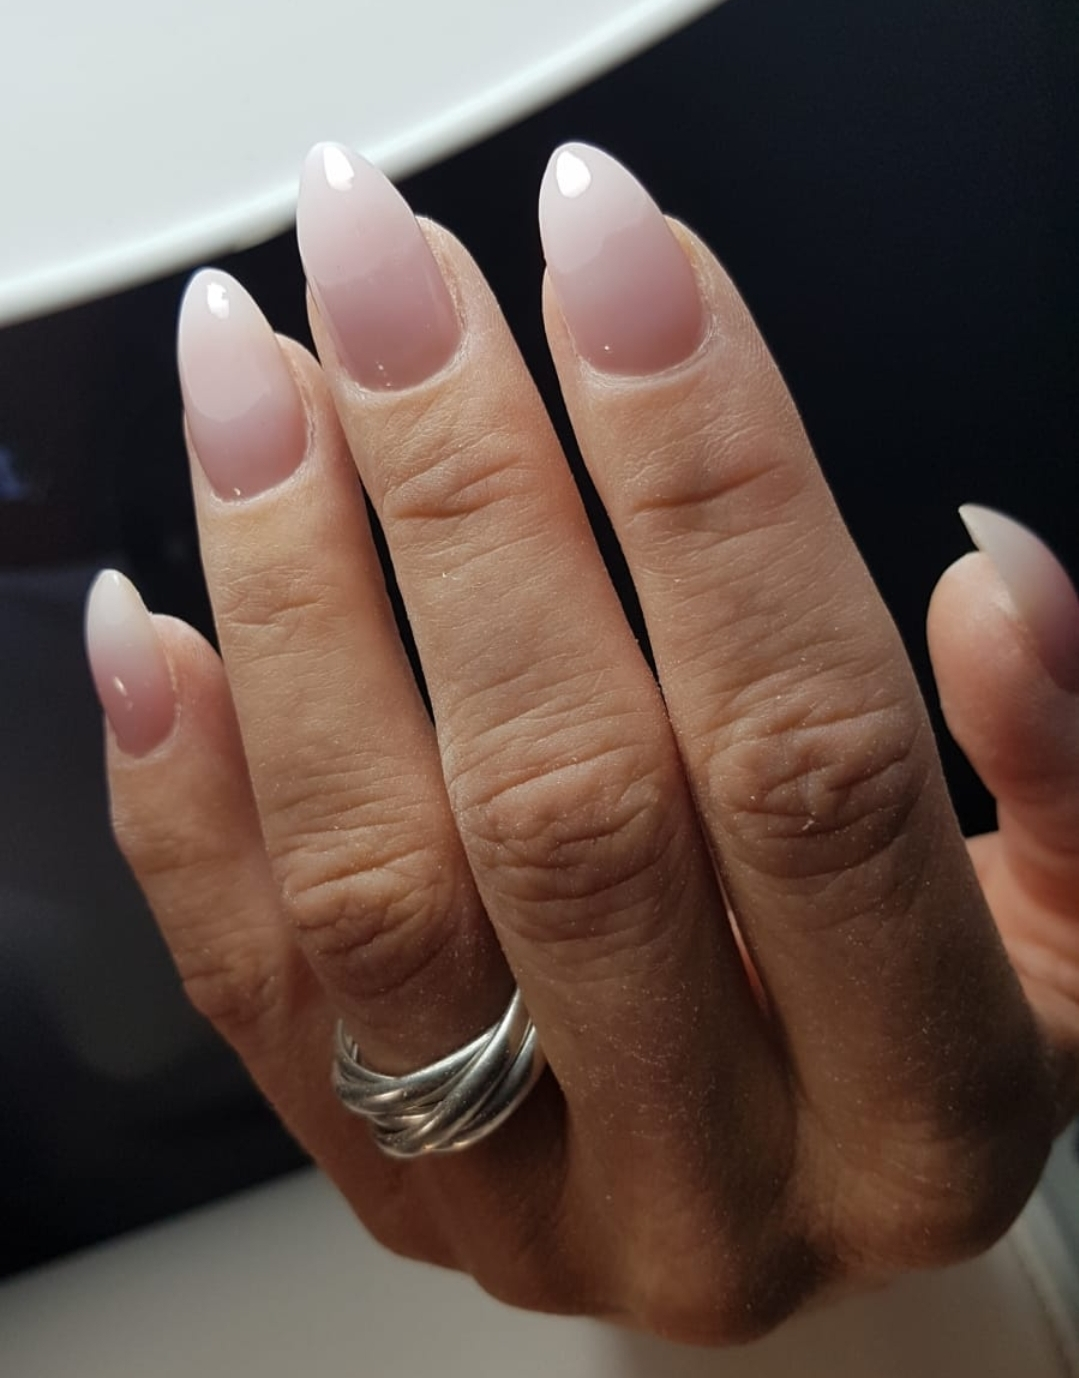 Roze-wite nagels